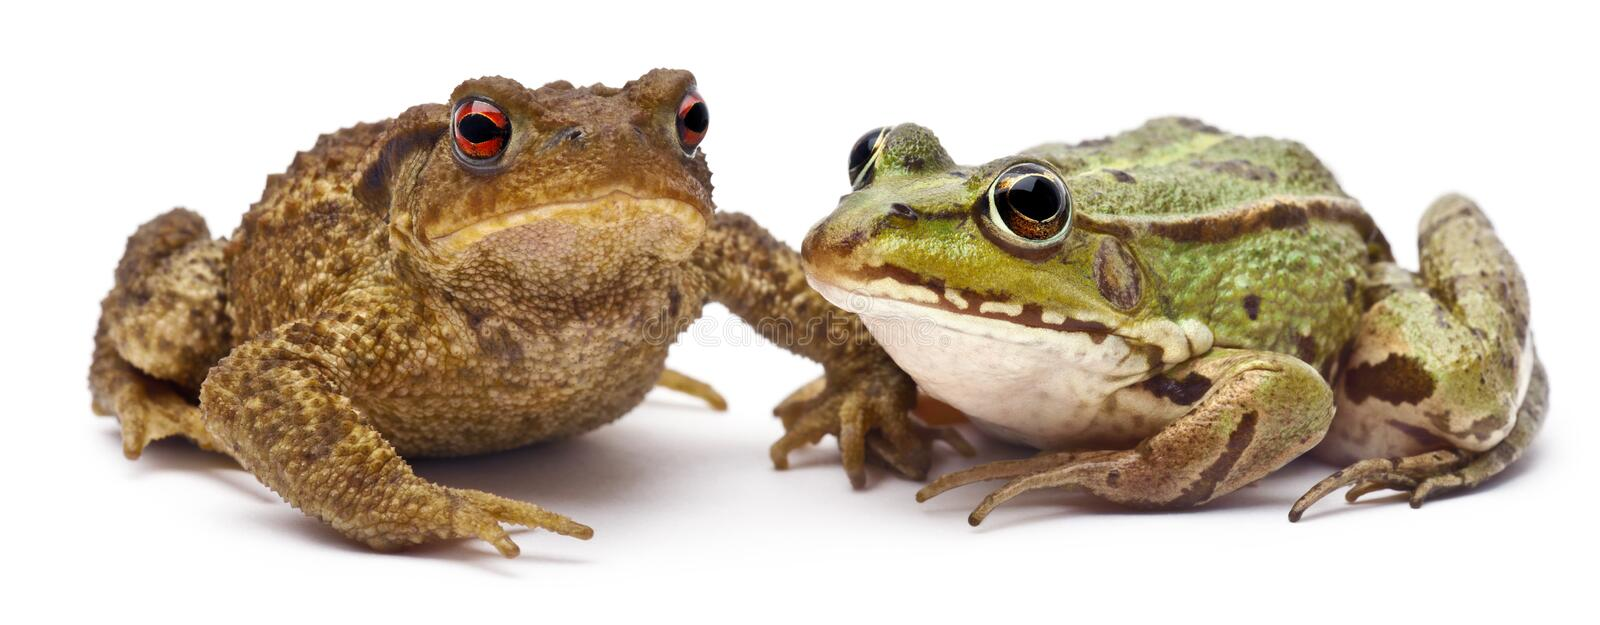 Common European frog or Edible Frog, Rana kl. Esculenta, next to common toad or European toad, Bufo bufo royalty free stock photography